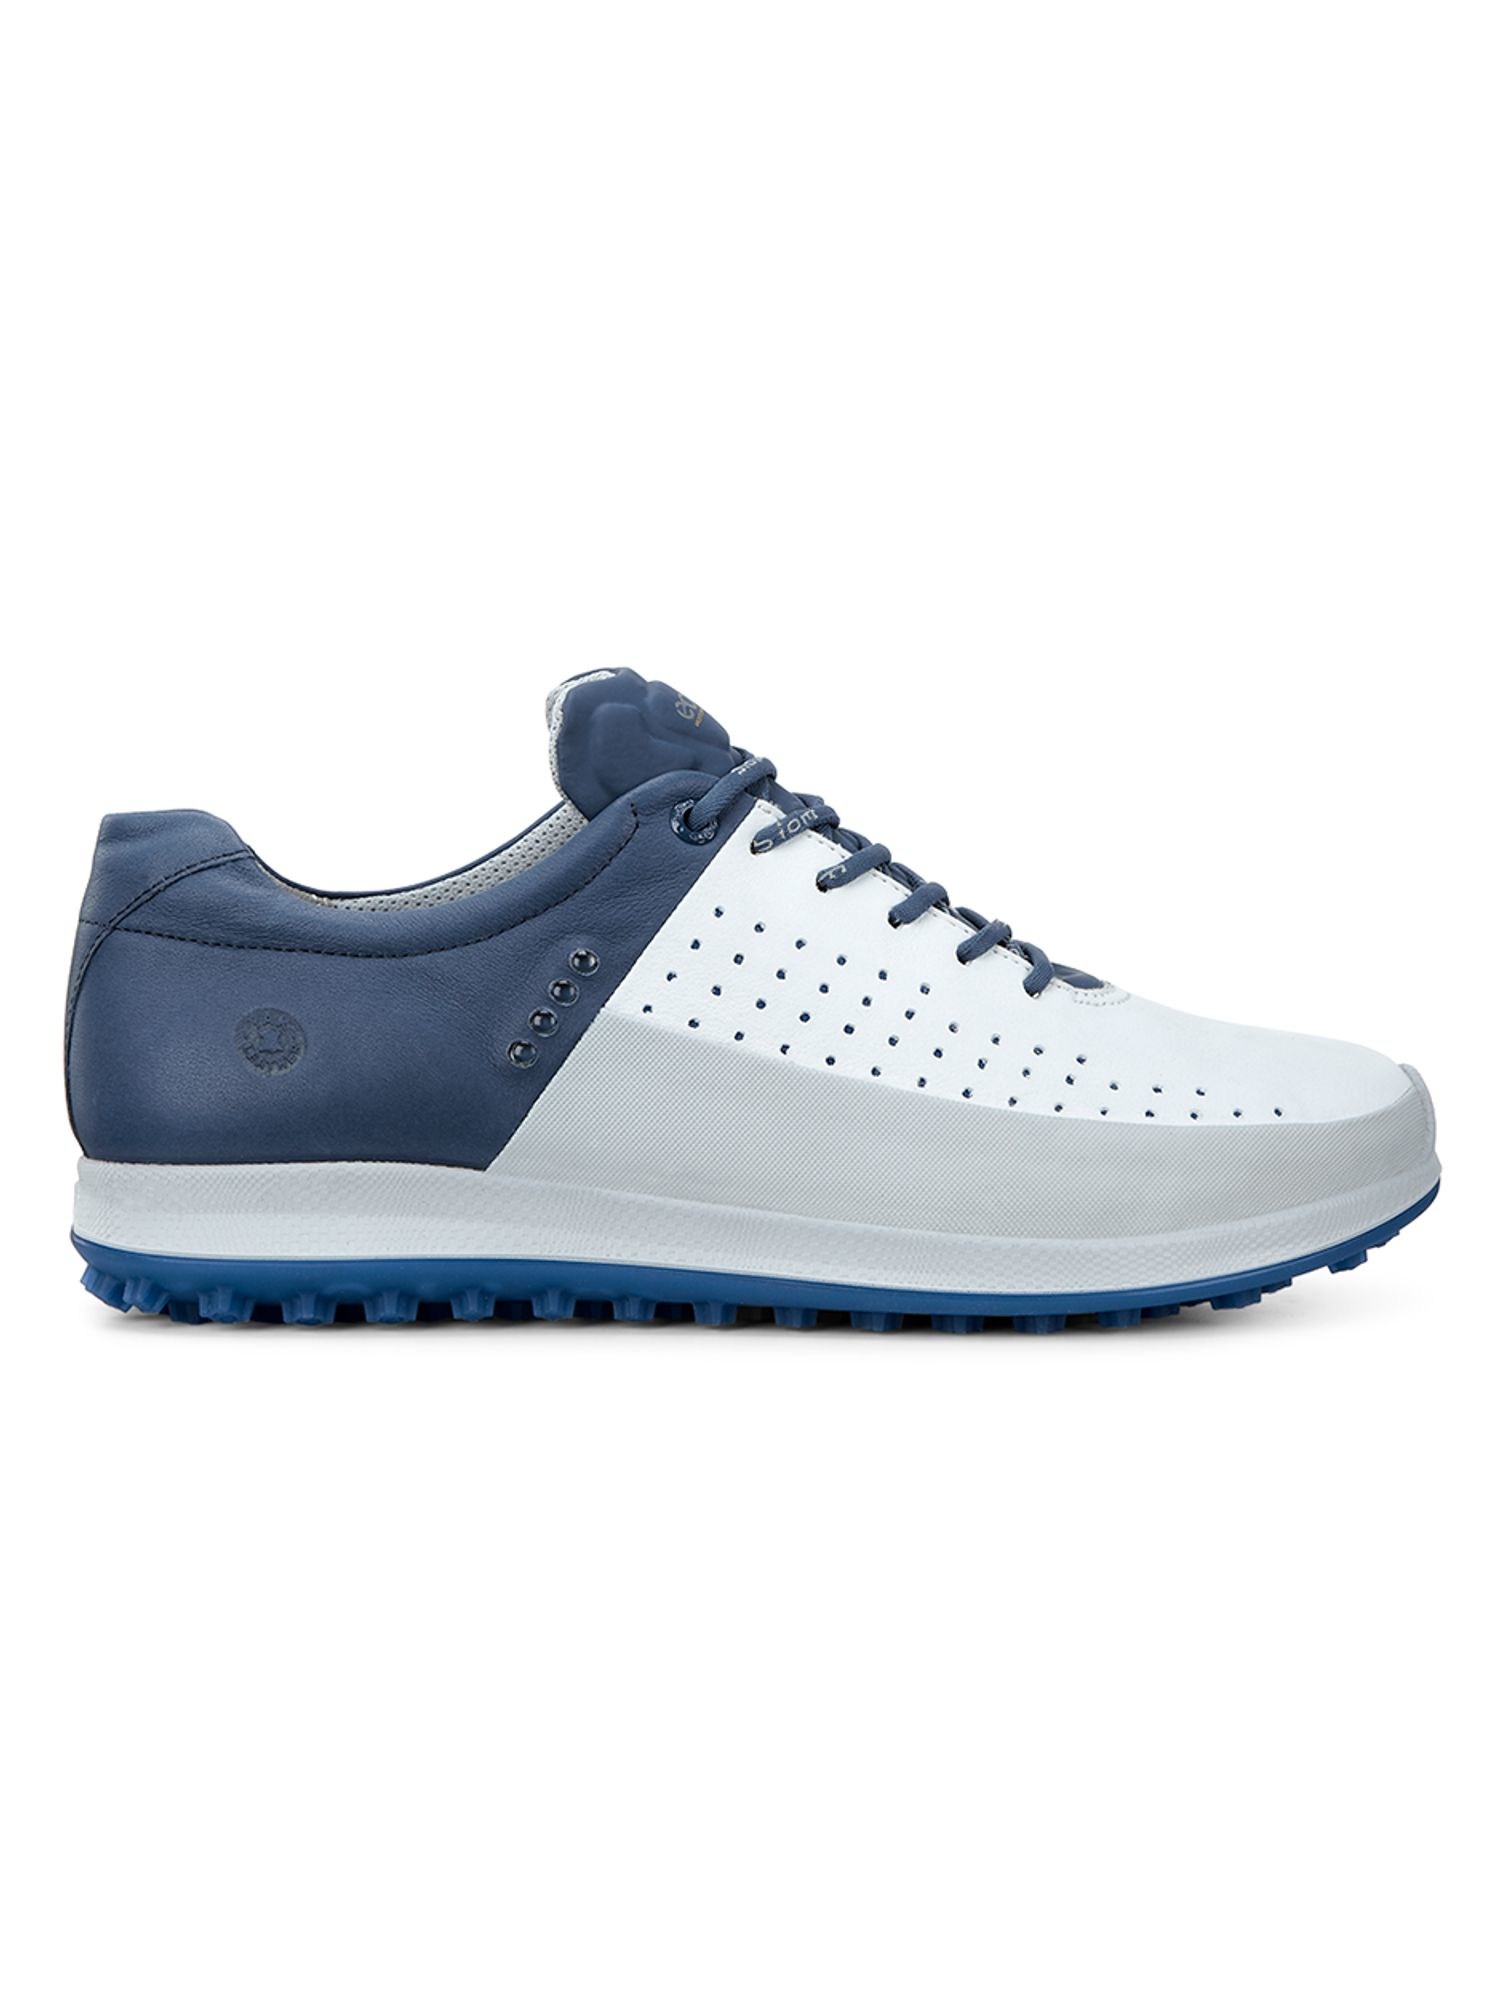 ecco biom hybrid 2 golf shoes in blue for save 12